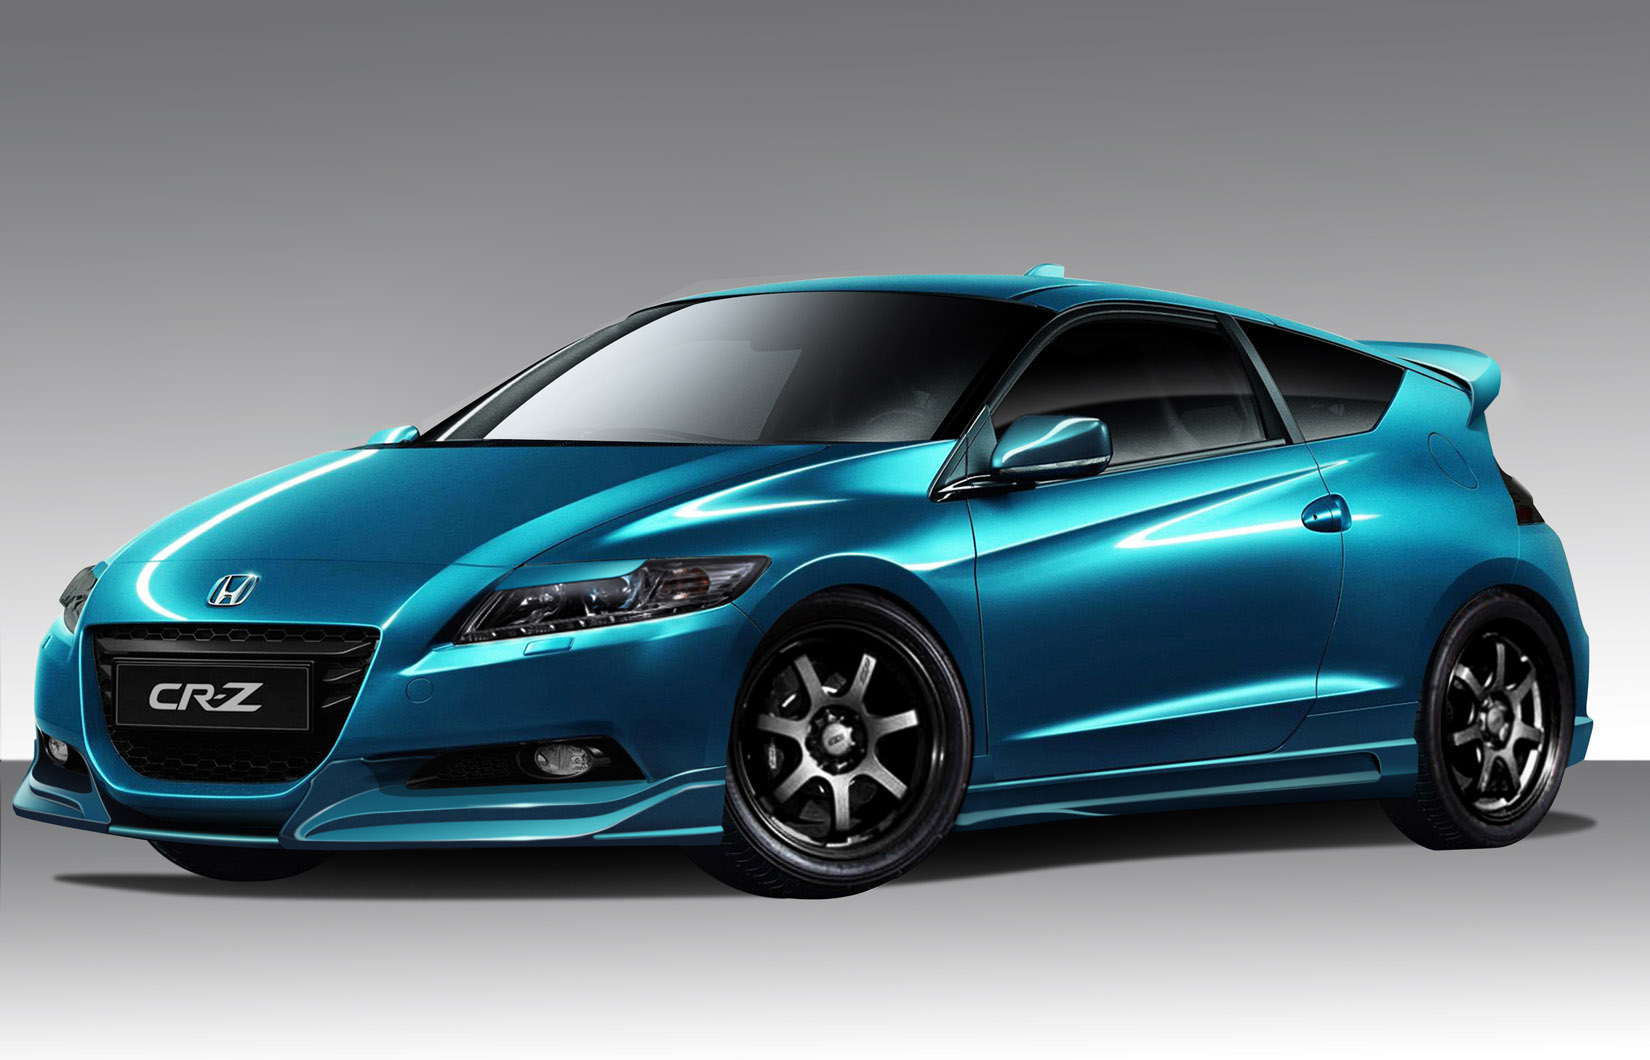 11 12 honda cr z c blaze duraflex full body kit 109392 ebay. Black Bedroom Furniture Sets. Home Design Ideas